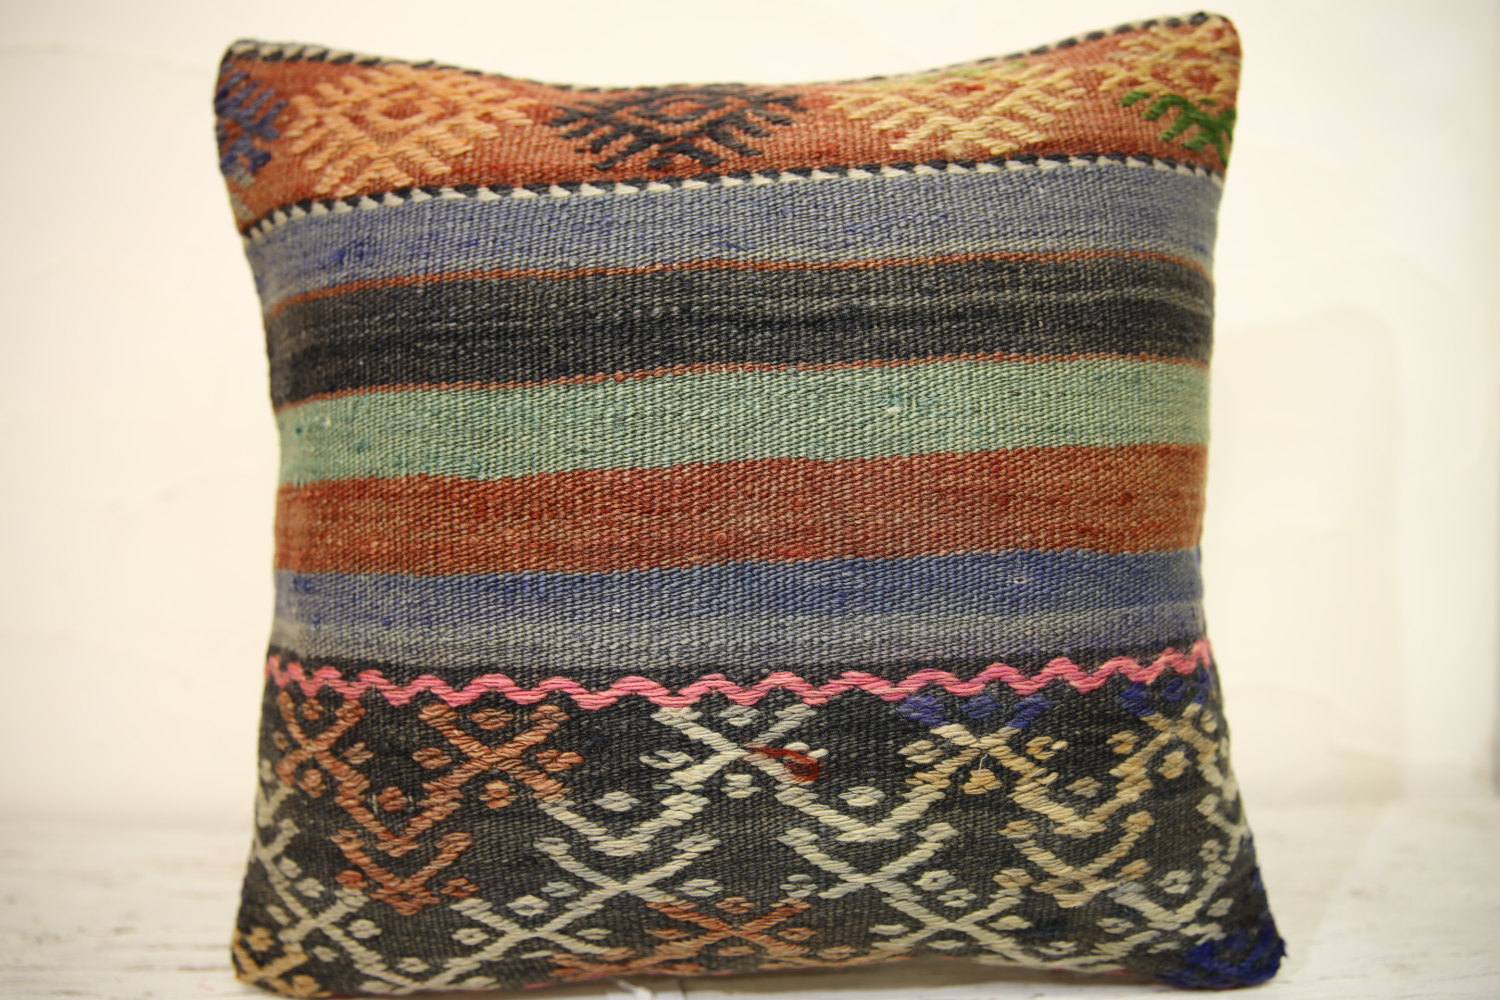 Kilim Pillows | 16x16 | Turkish pillows | 1352 | Accent Pillow,Decorative Pillow